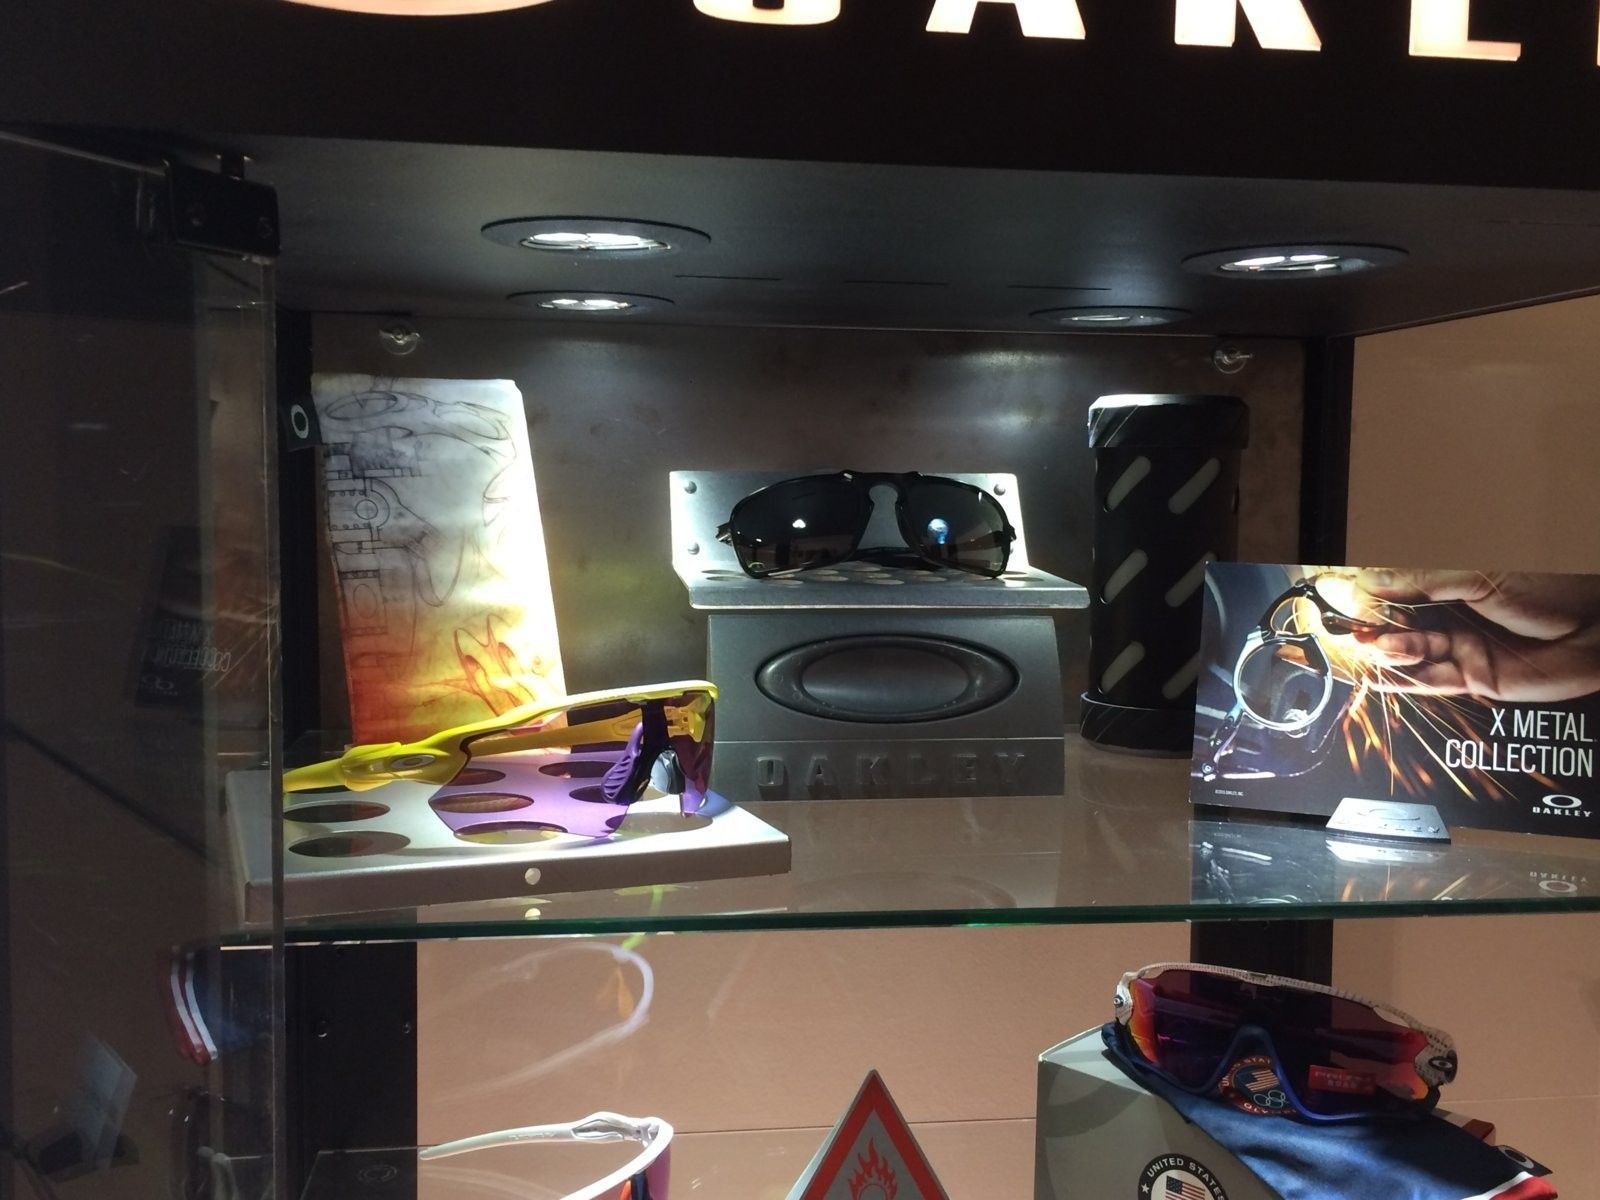 Are these genuine Oakley pieces? - image.jpeg